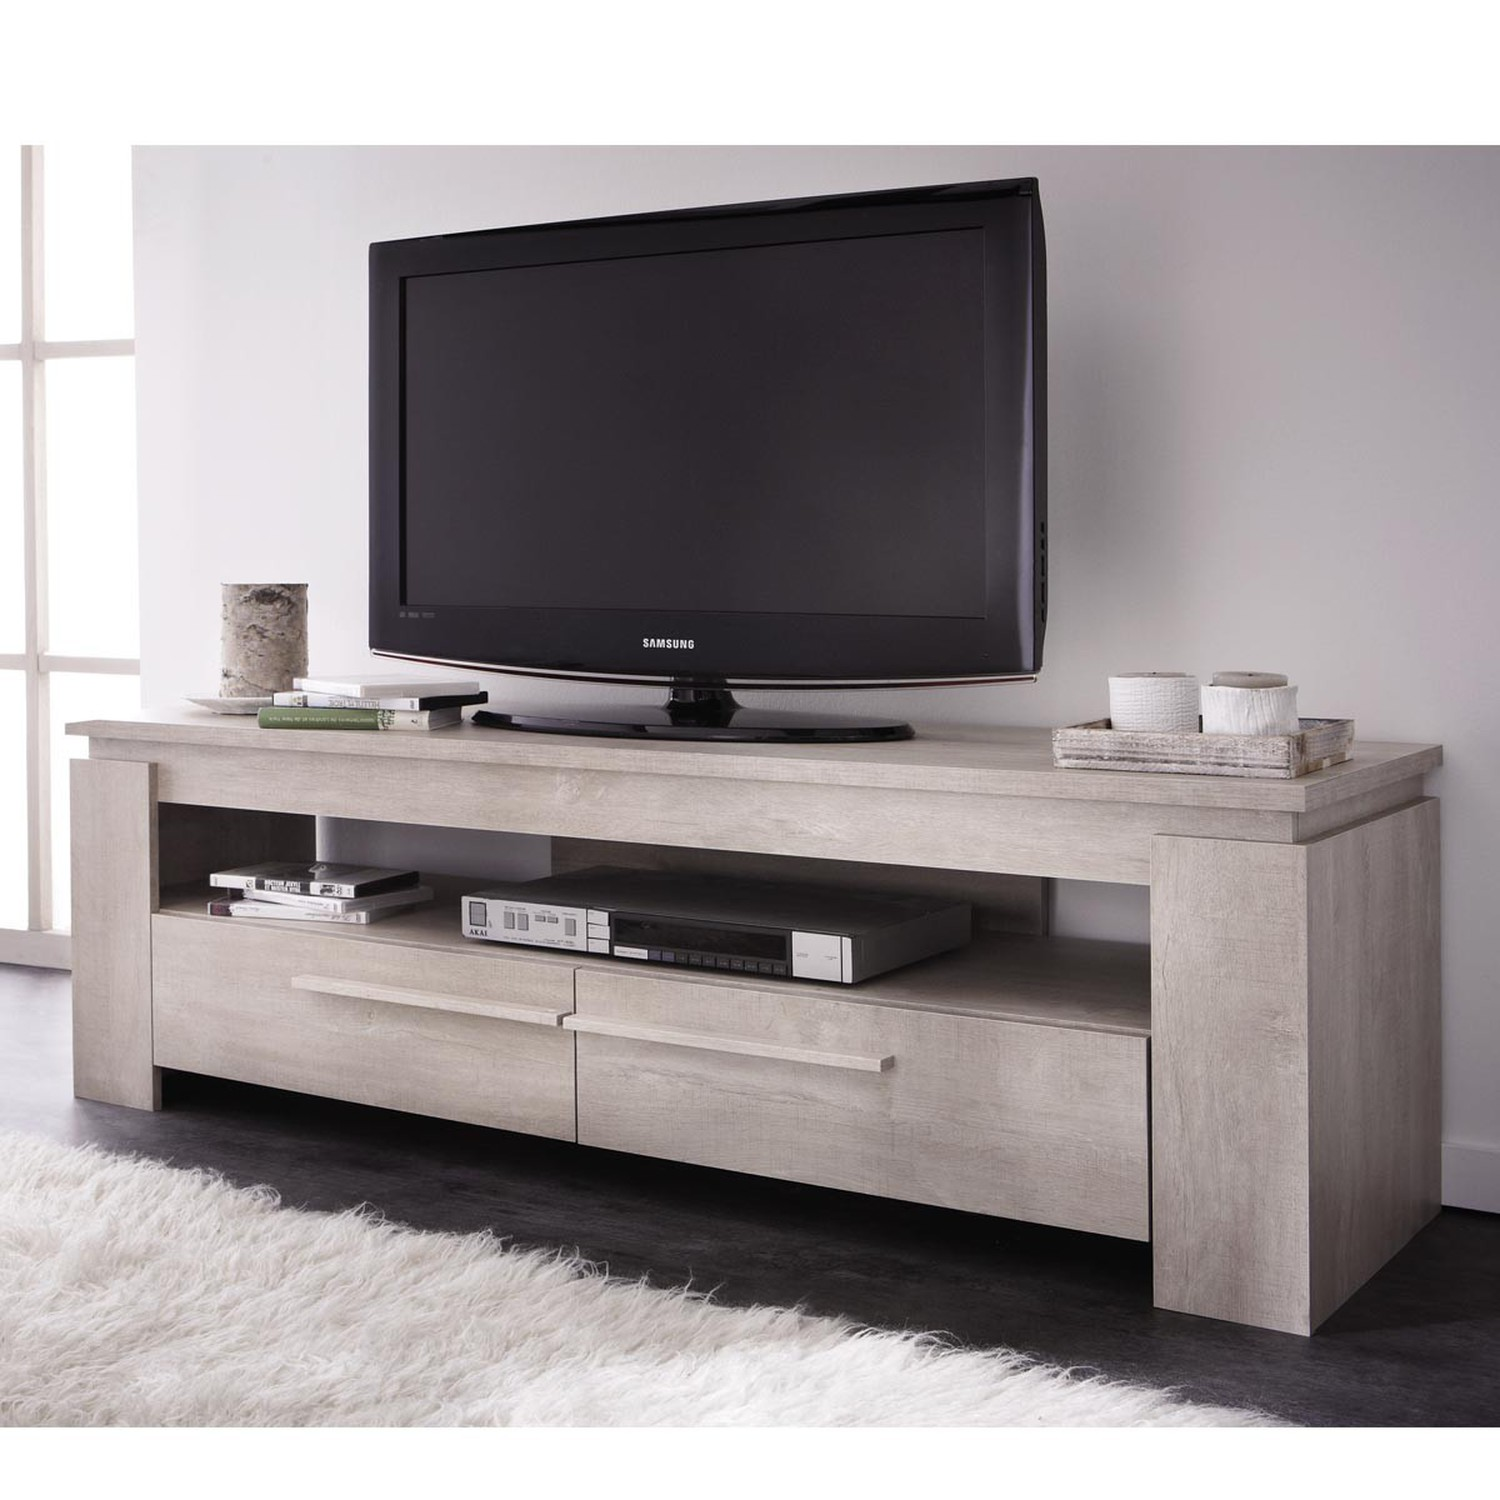 table basse tv id es de d coration int rieure french decor. Black Bedroom Furniture Sets. Home Design Ideas